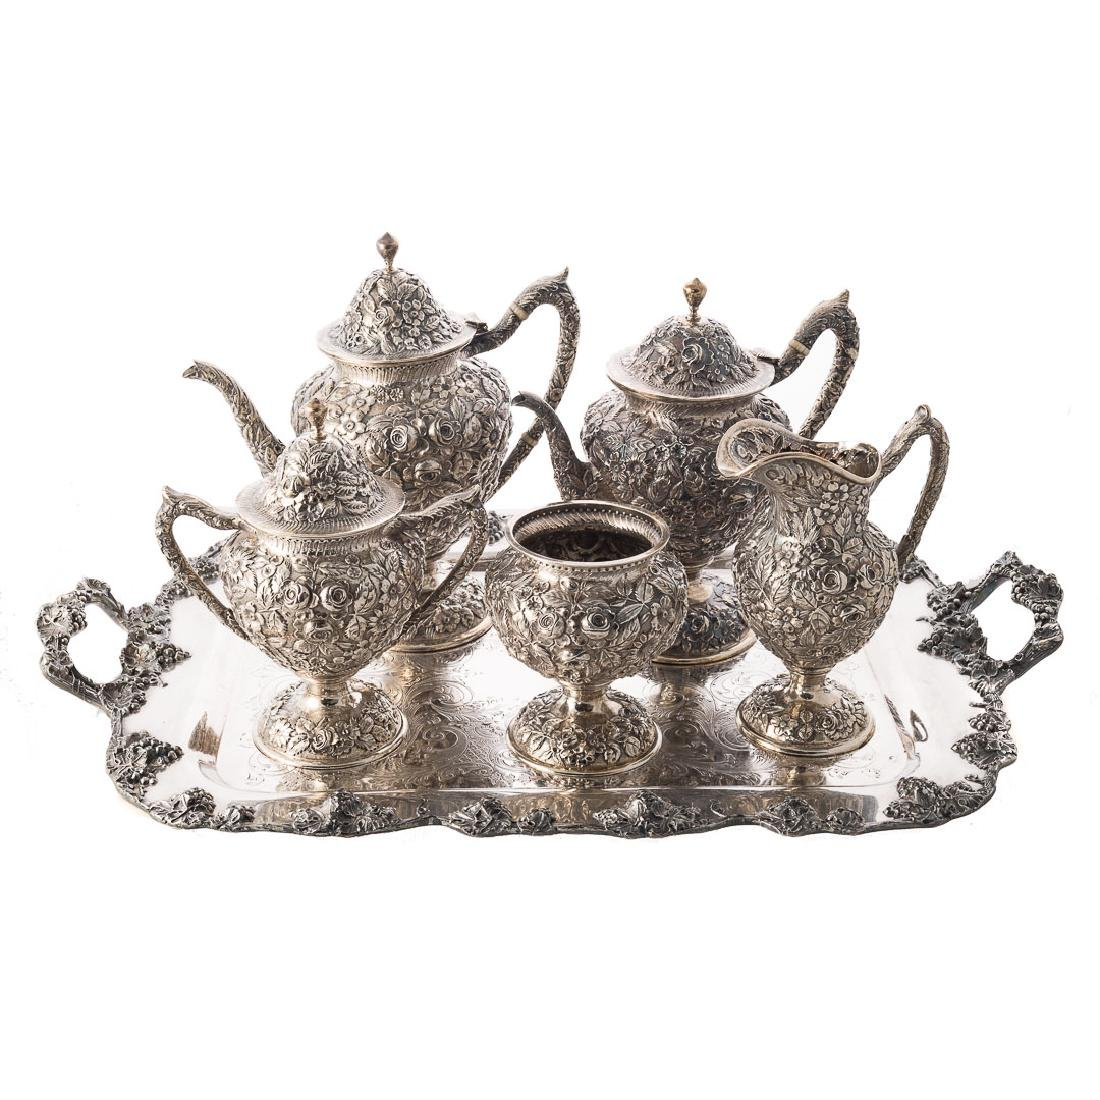 Early Baltimore repousse sterling coffee/tea set